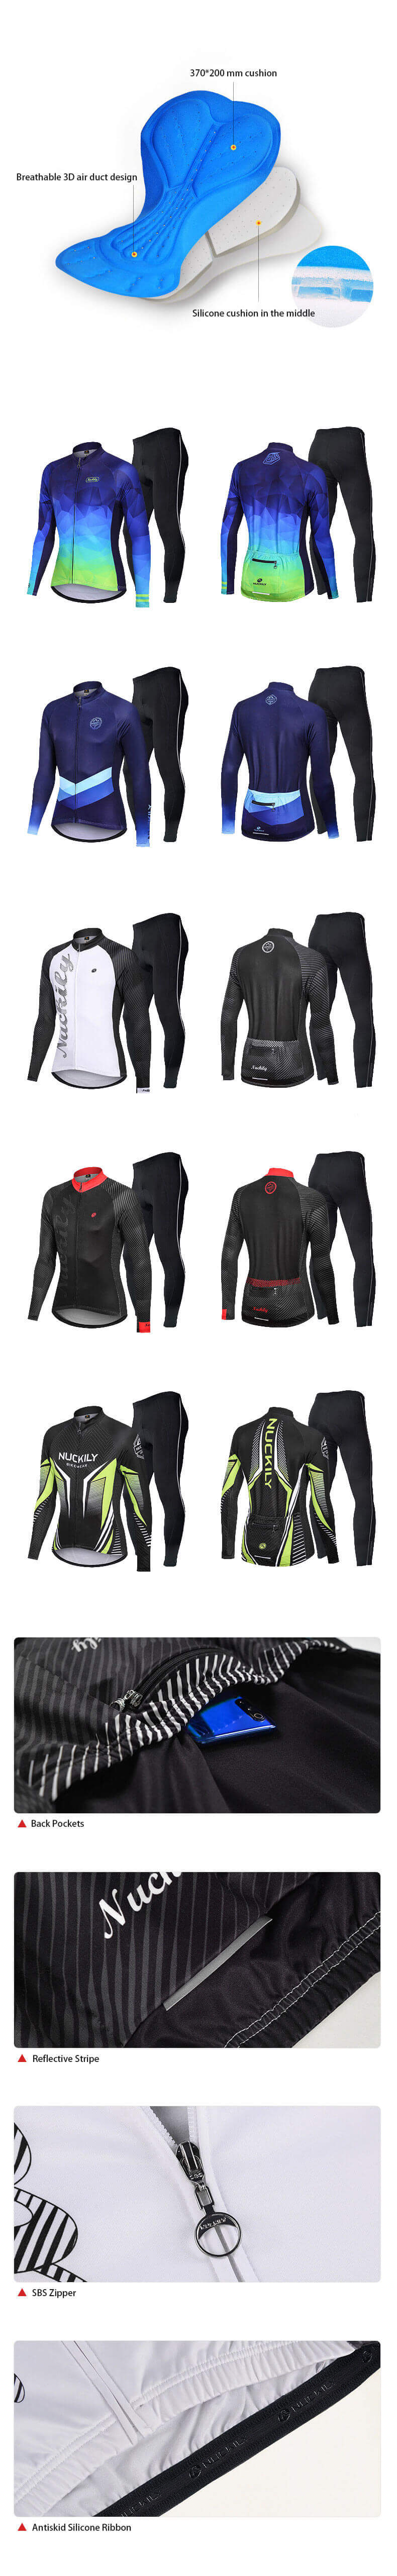 Men Winter Jersey with Tights